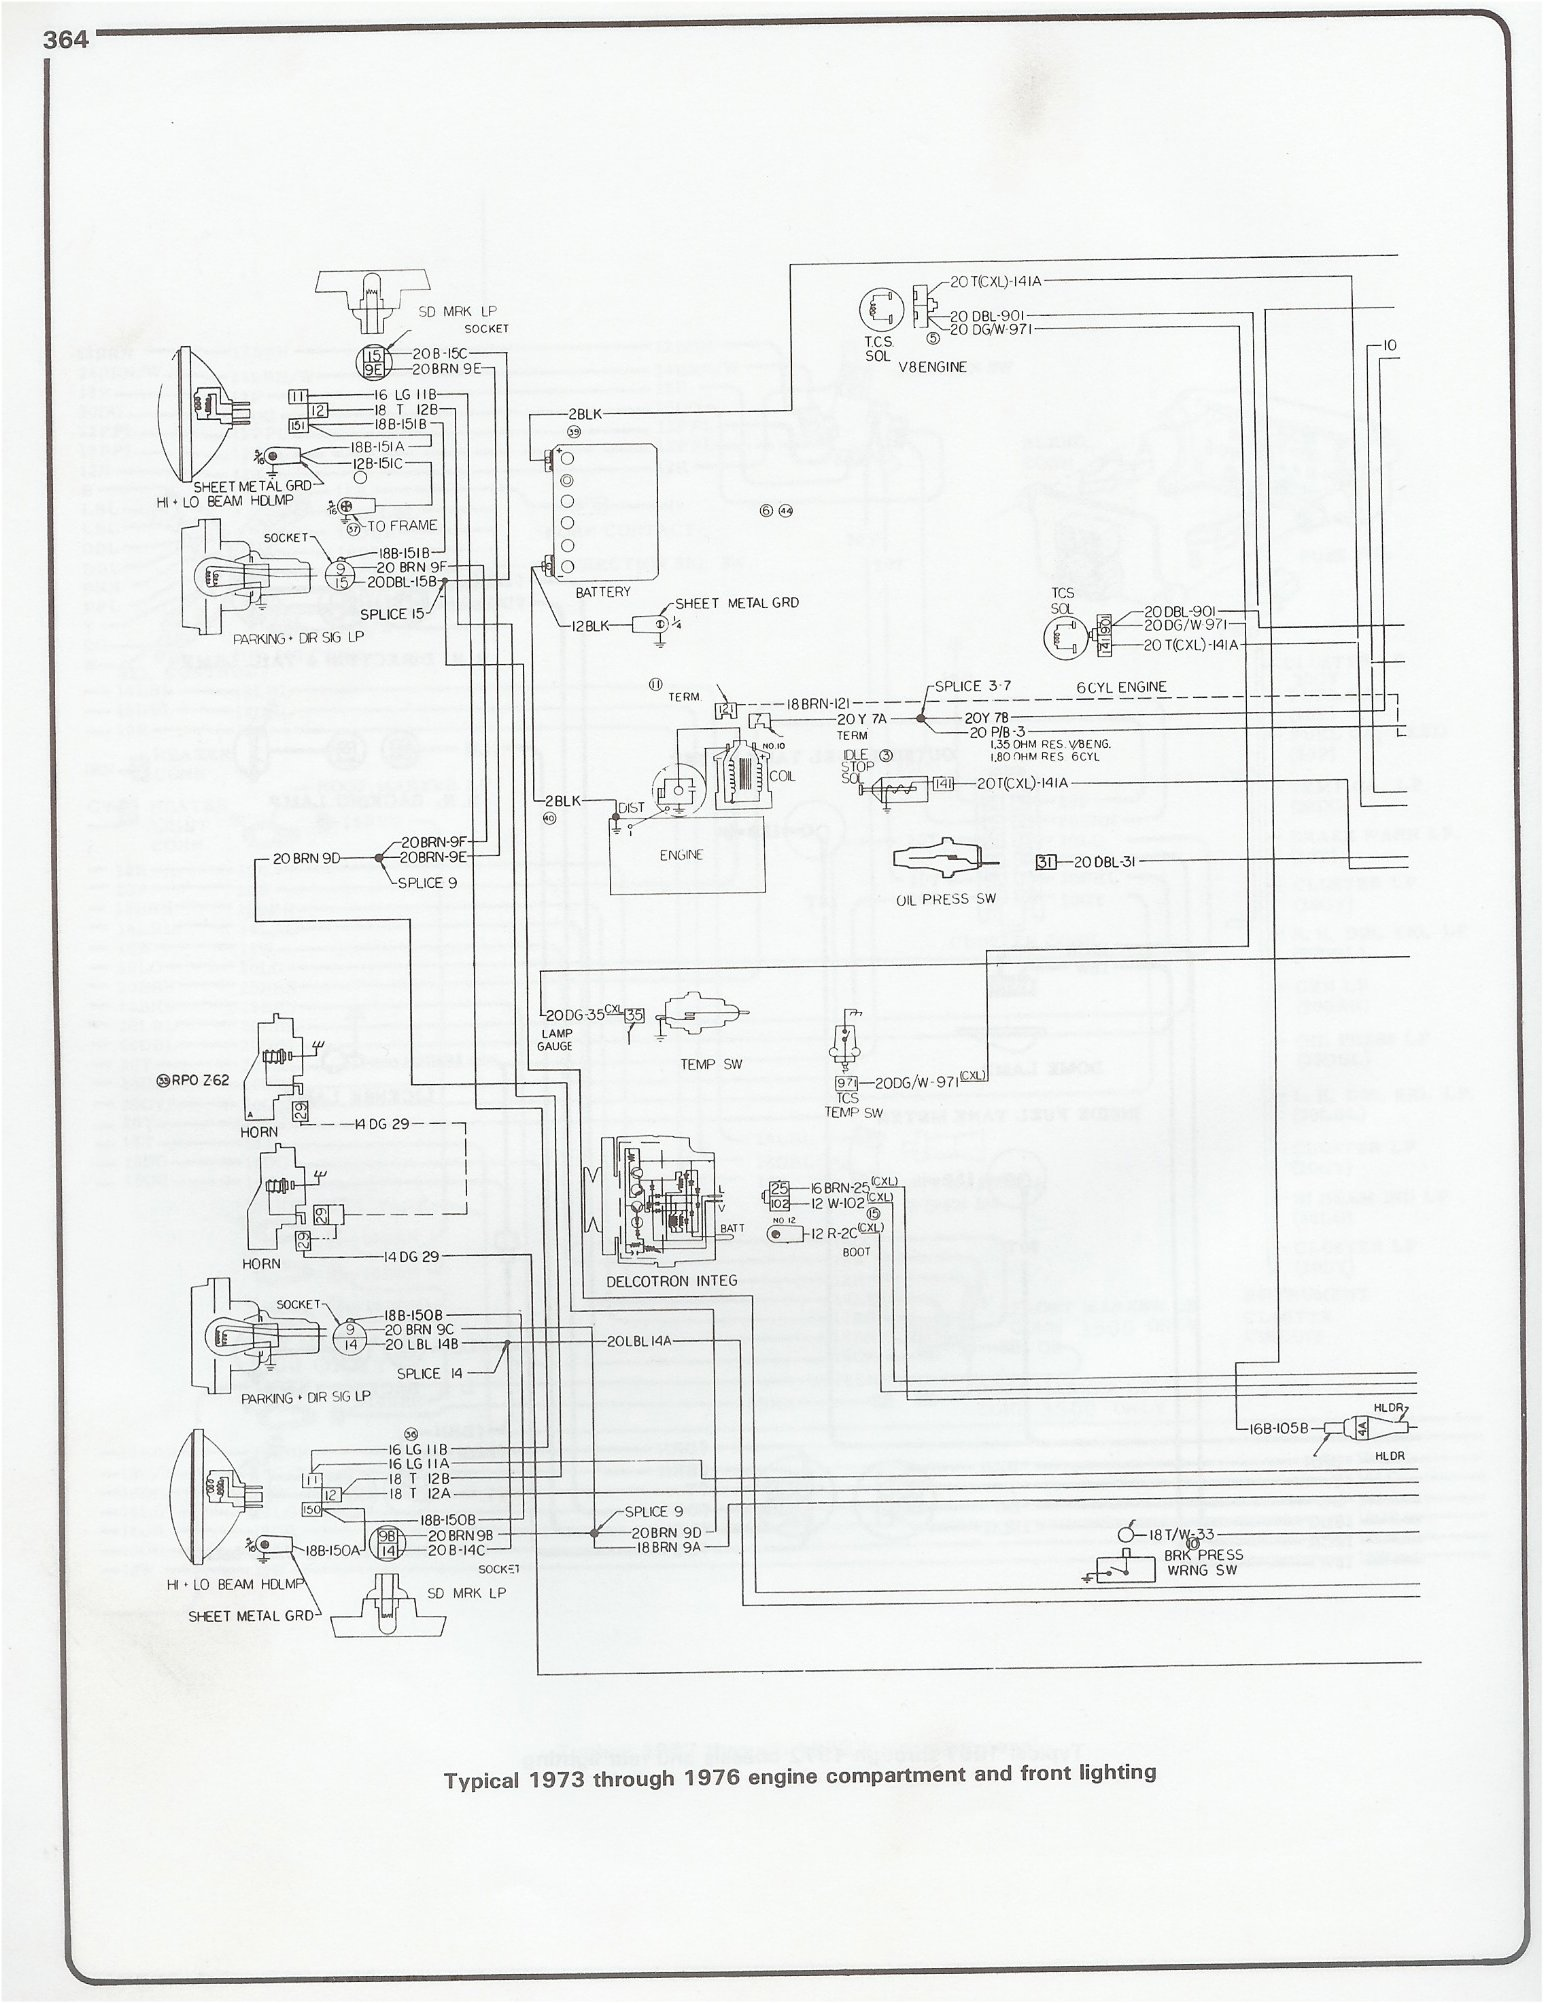 Wiring Diagram 1973